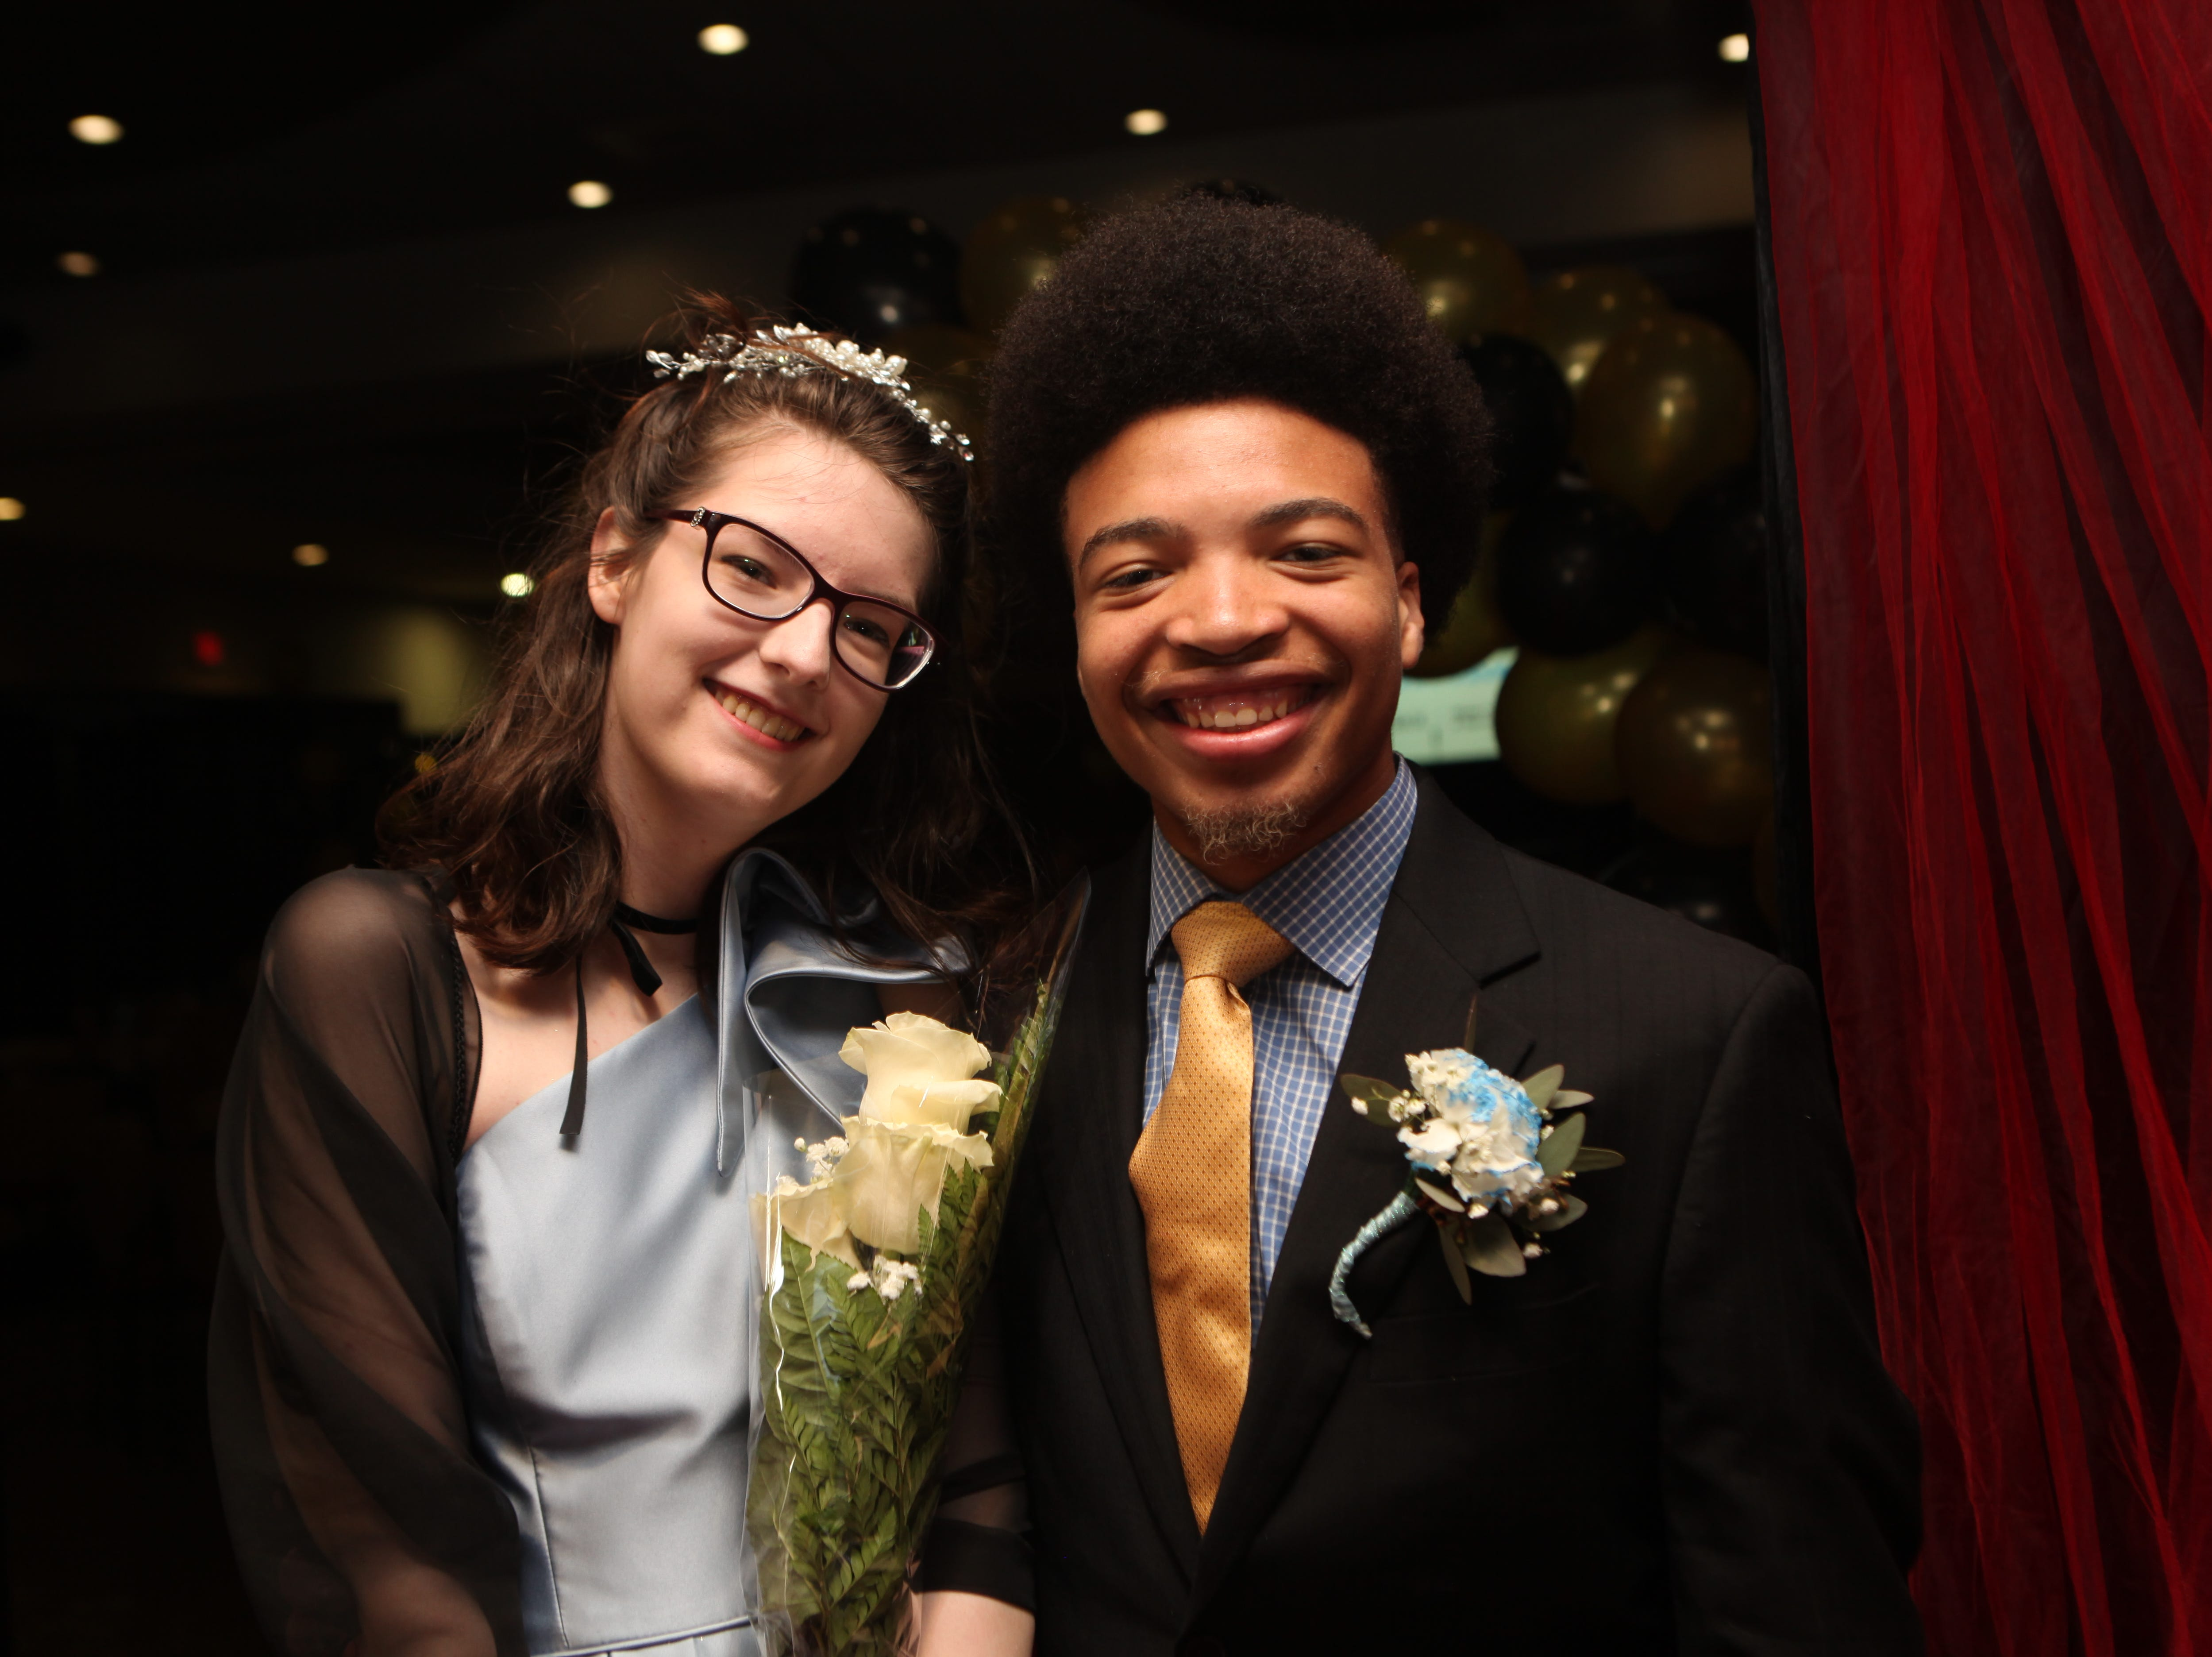 Cheyanne Turner and Darrius Stubbs at the Middle College 2019 prom at the APSU Ballroom on Friday, April 26, 2019.